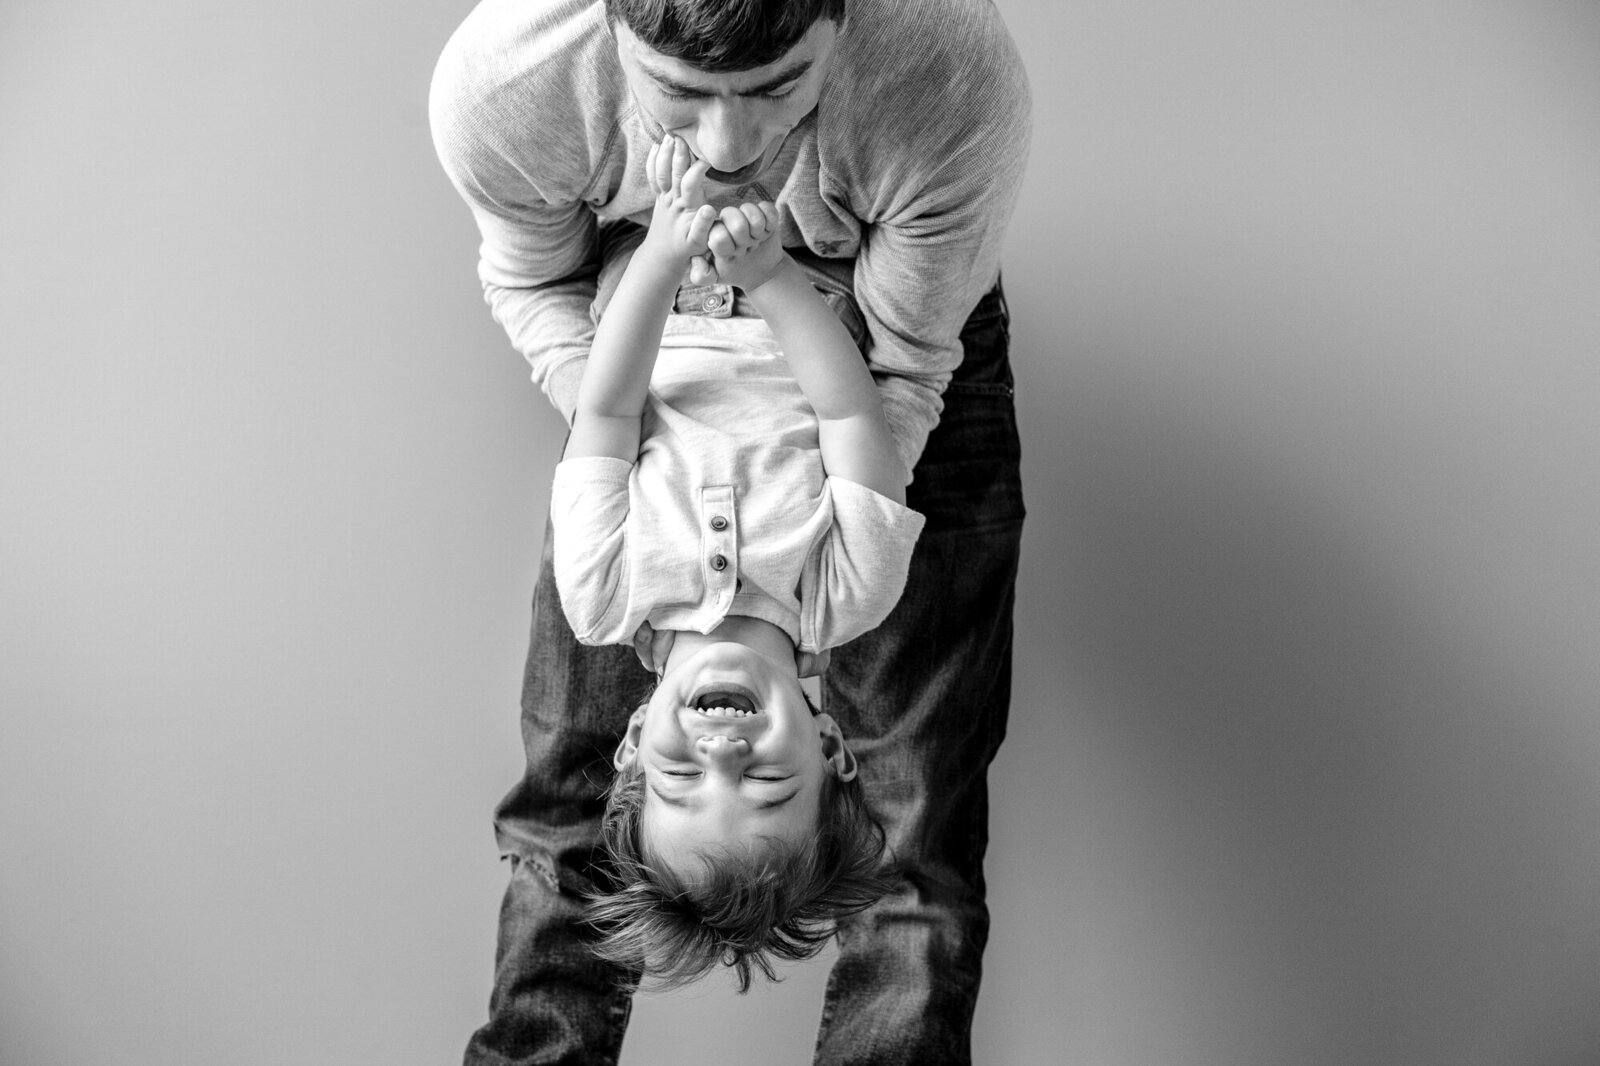 Son giggling as dad hangs him upside down